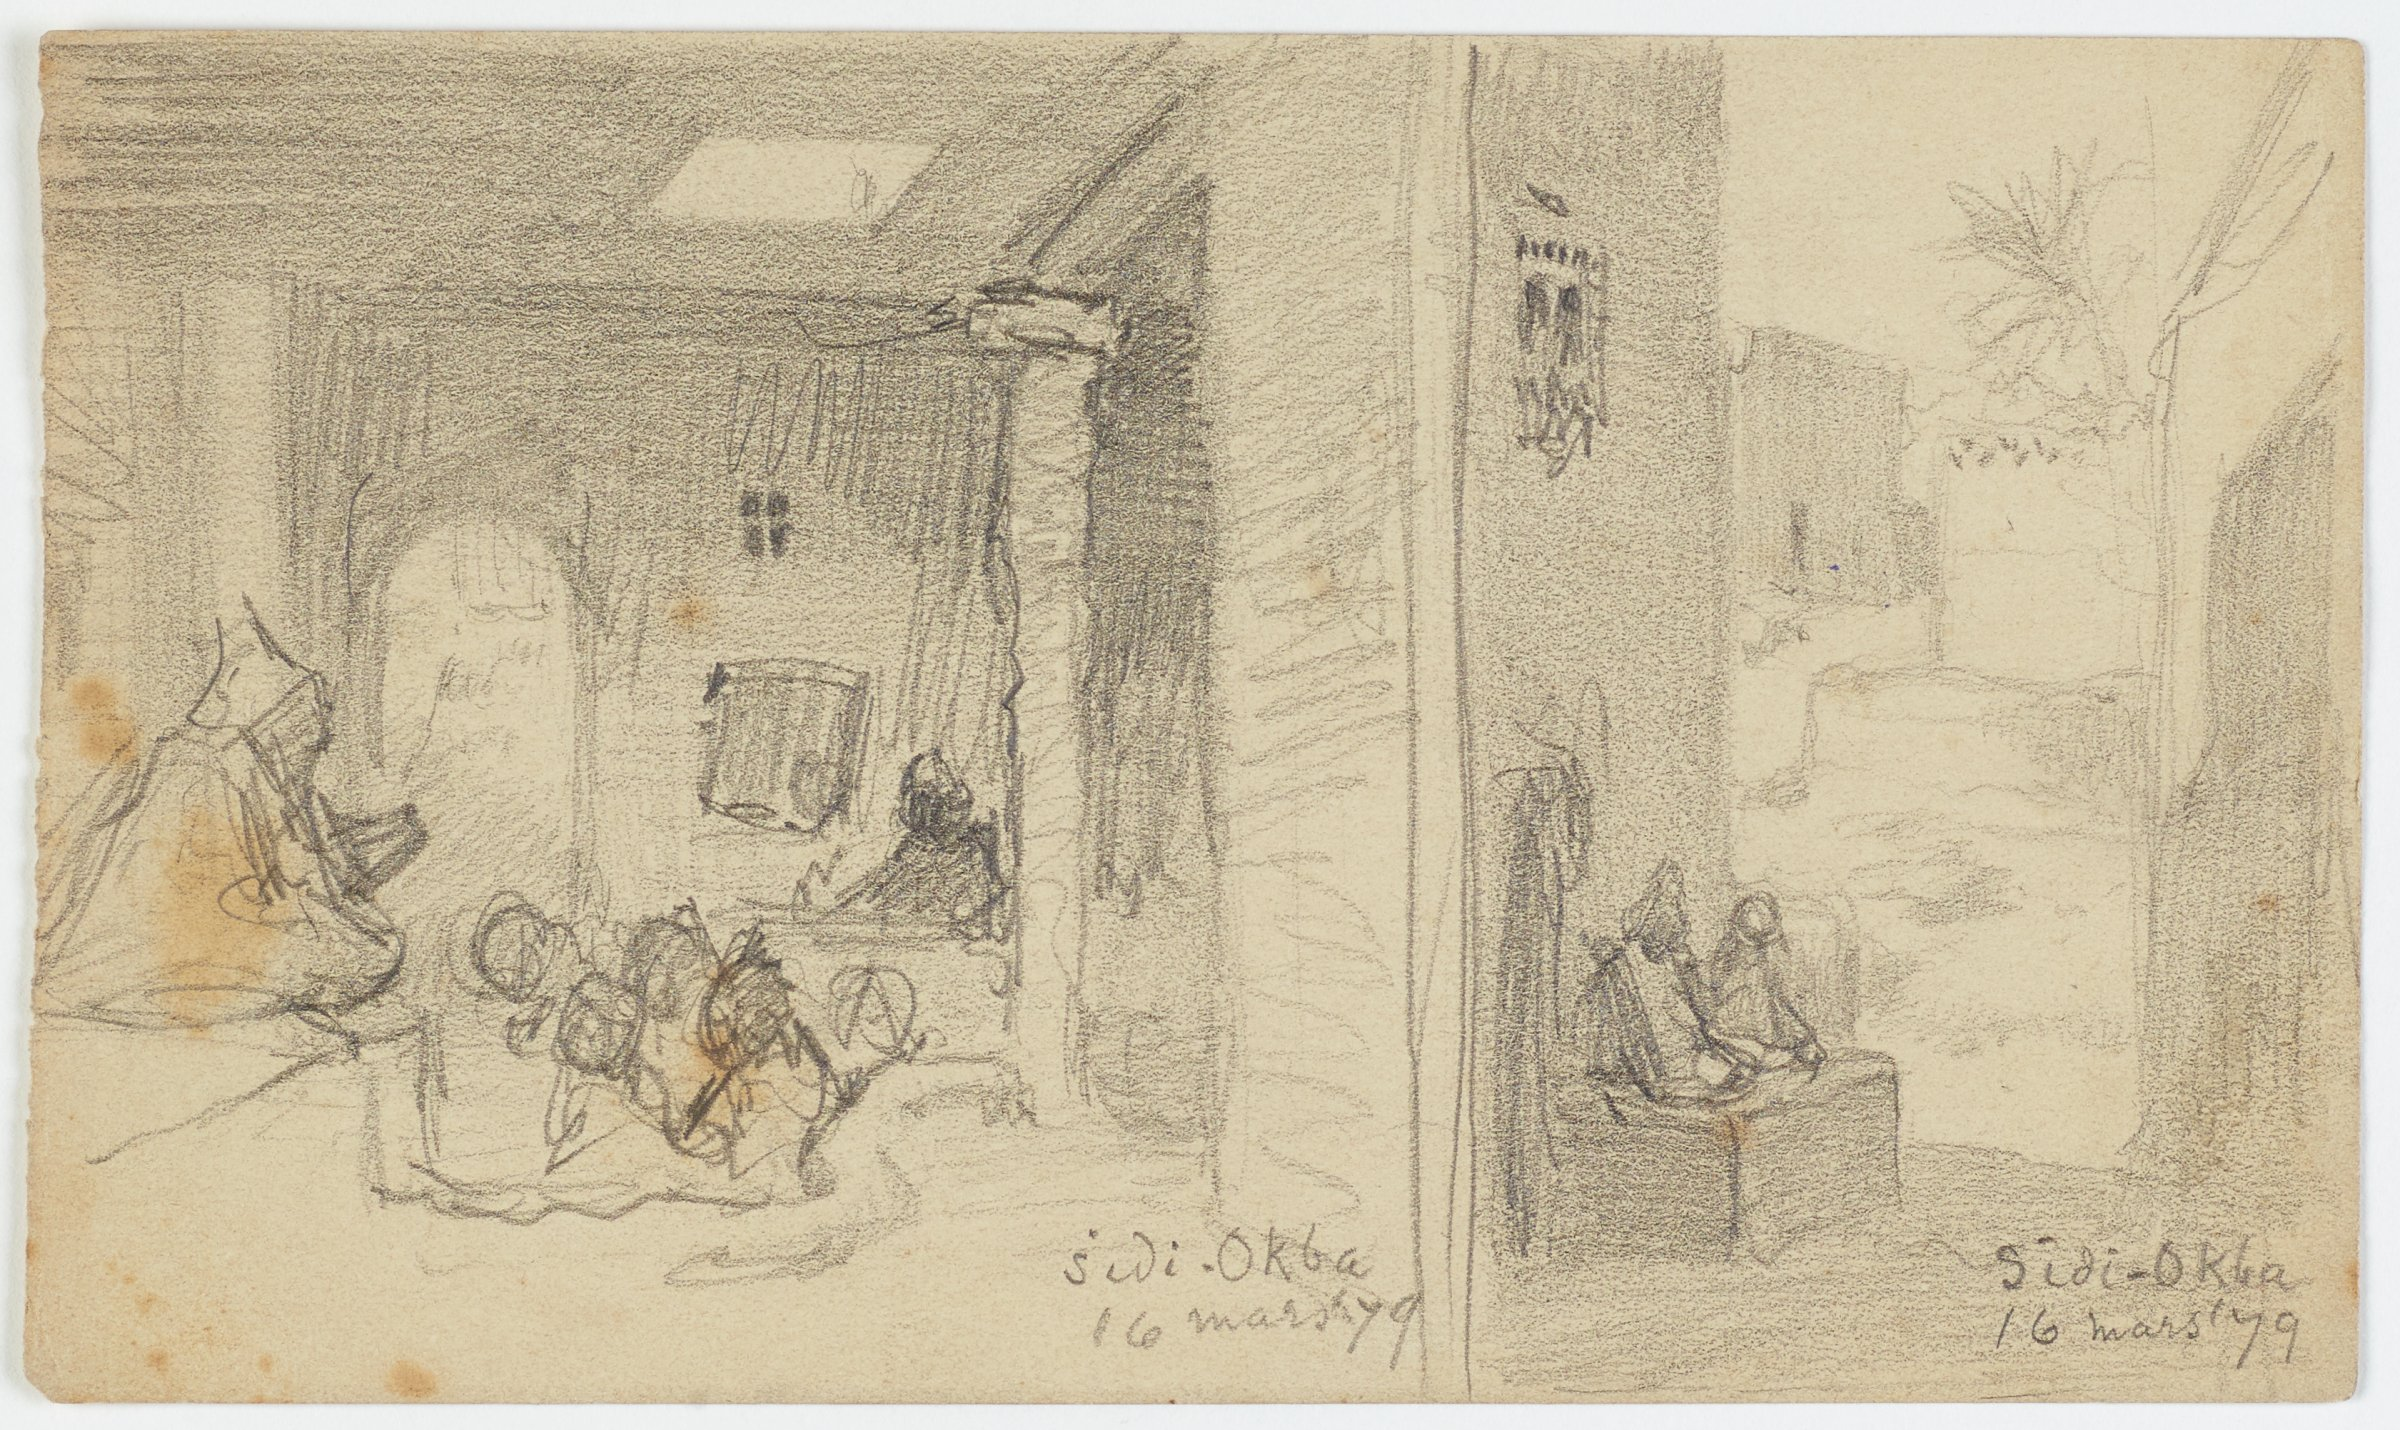 This drawing in pencil on paper is divided into two scenes by a vertical line just right of the center of the sheet. In the scene on the left, figures are quickly sketched in an interior. There is an arched doorway on the back wall, a light squre in the ceiling, and roughly sketched architectural elements defining an interior space. In the scene on the right, a street or alley lined with buildings is quickly sketched. Buildings flank the road to the left and right, receding into space, and a tree is visible at the upper right.